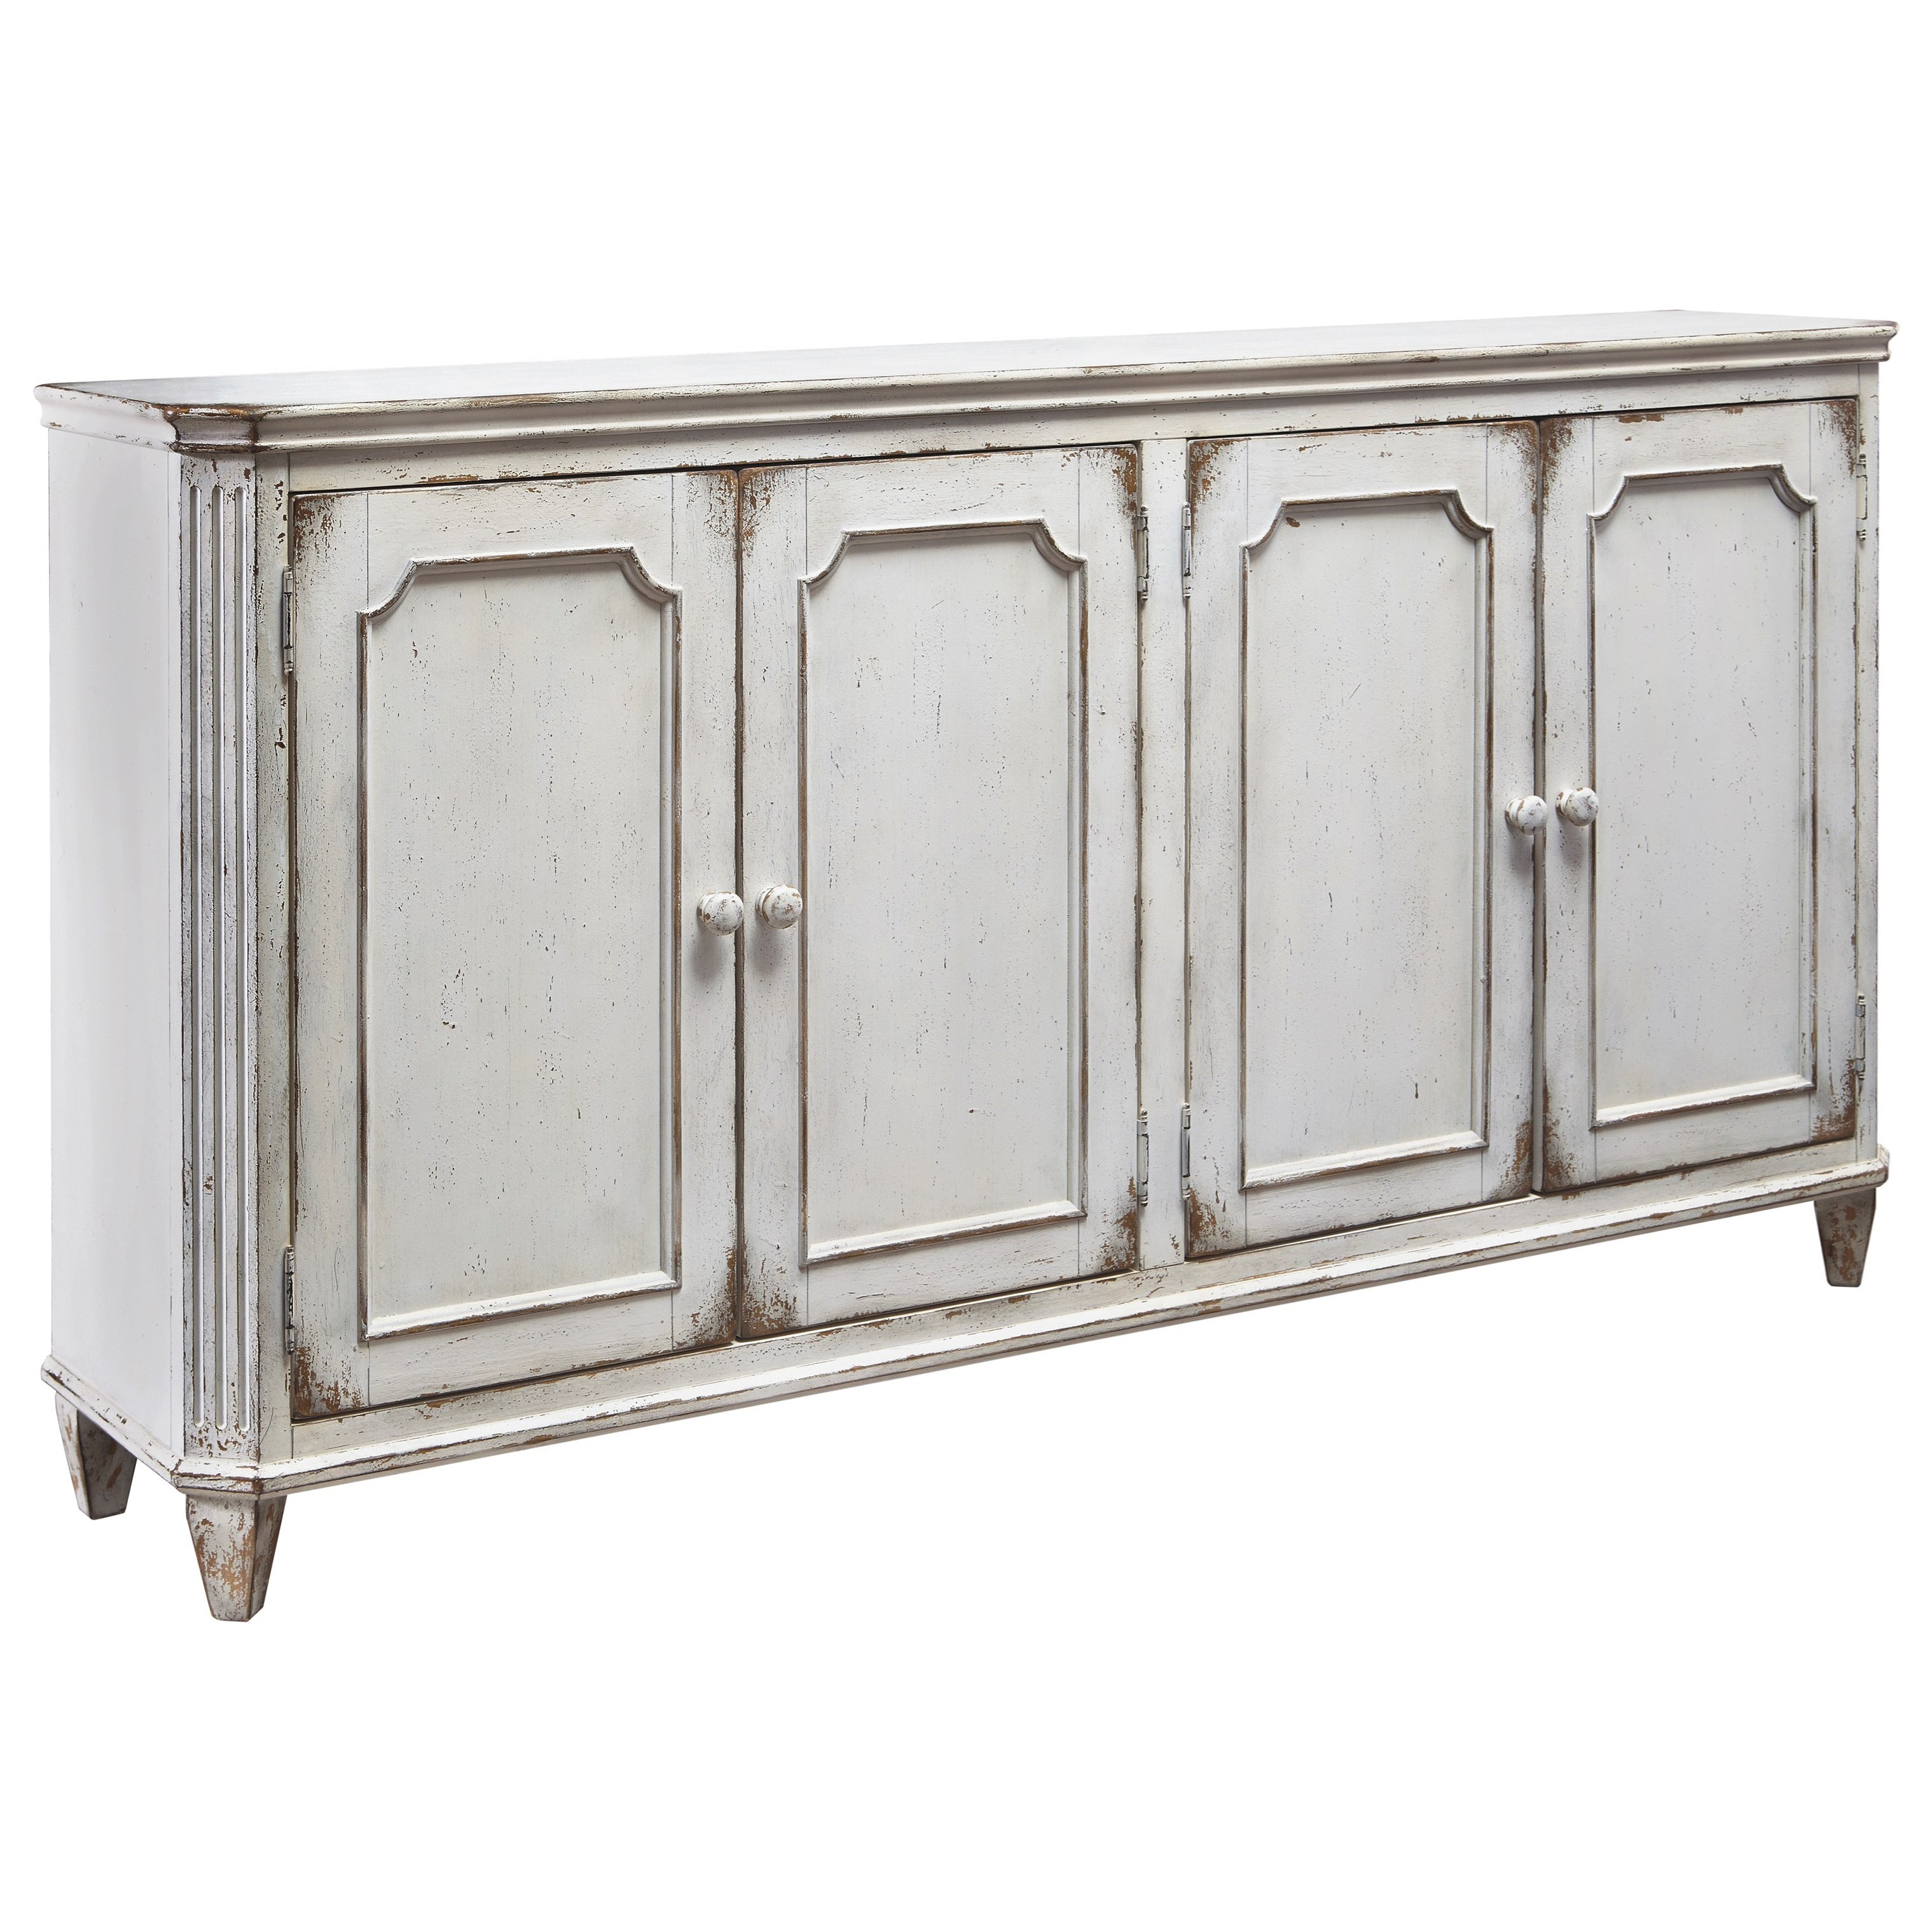 Signature design by ashley mirimyn french provincial style for Sofa table cabinet